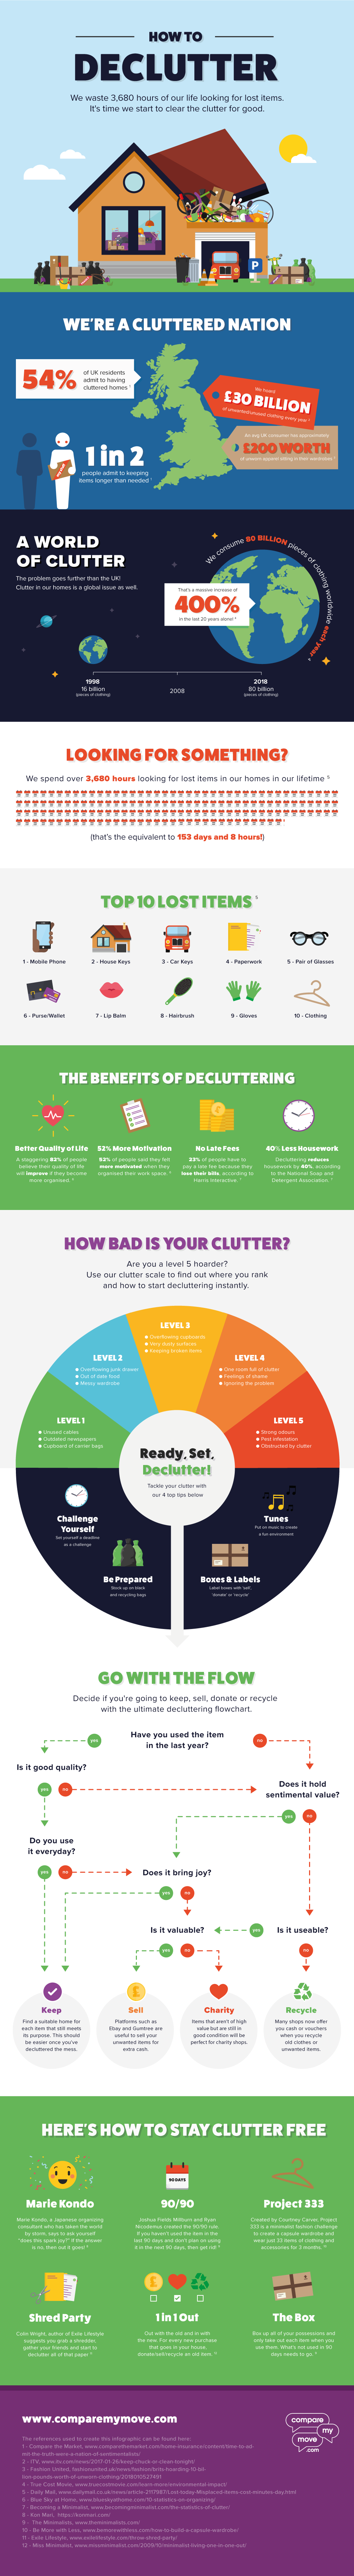 How To Declutter Infographic - Compare My Move